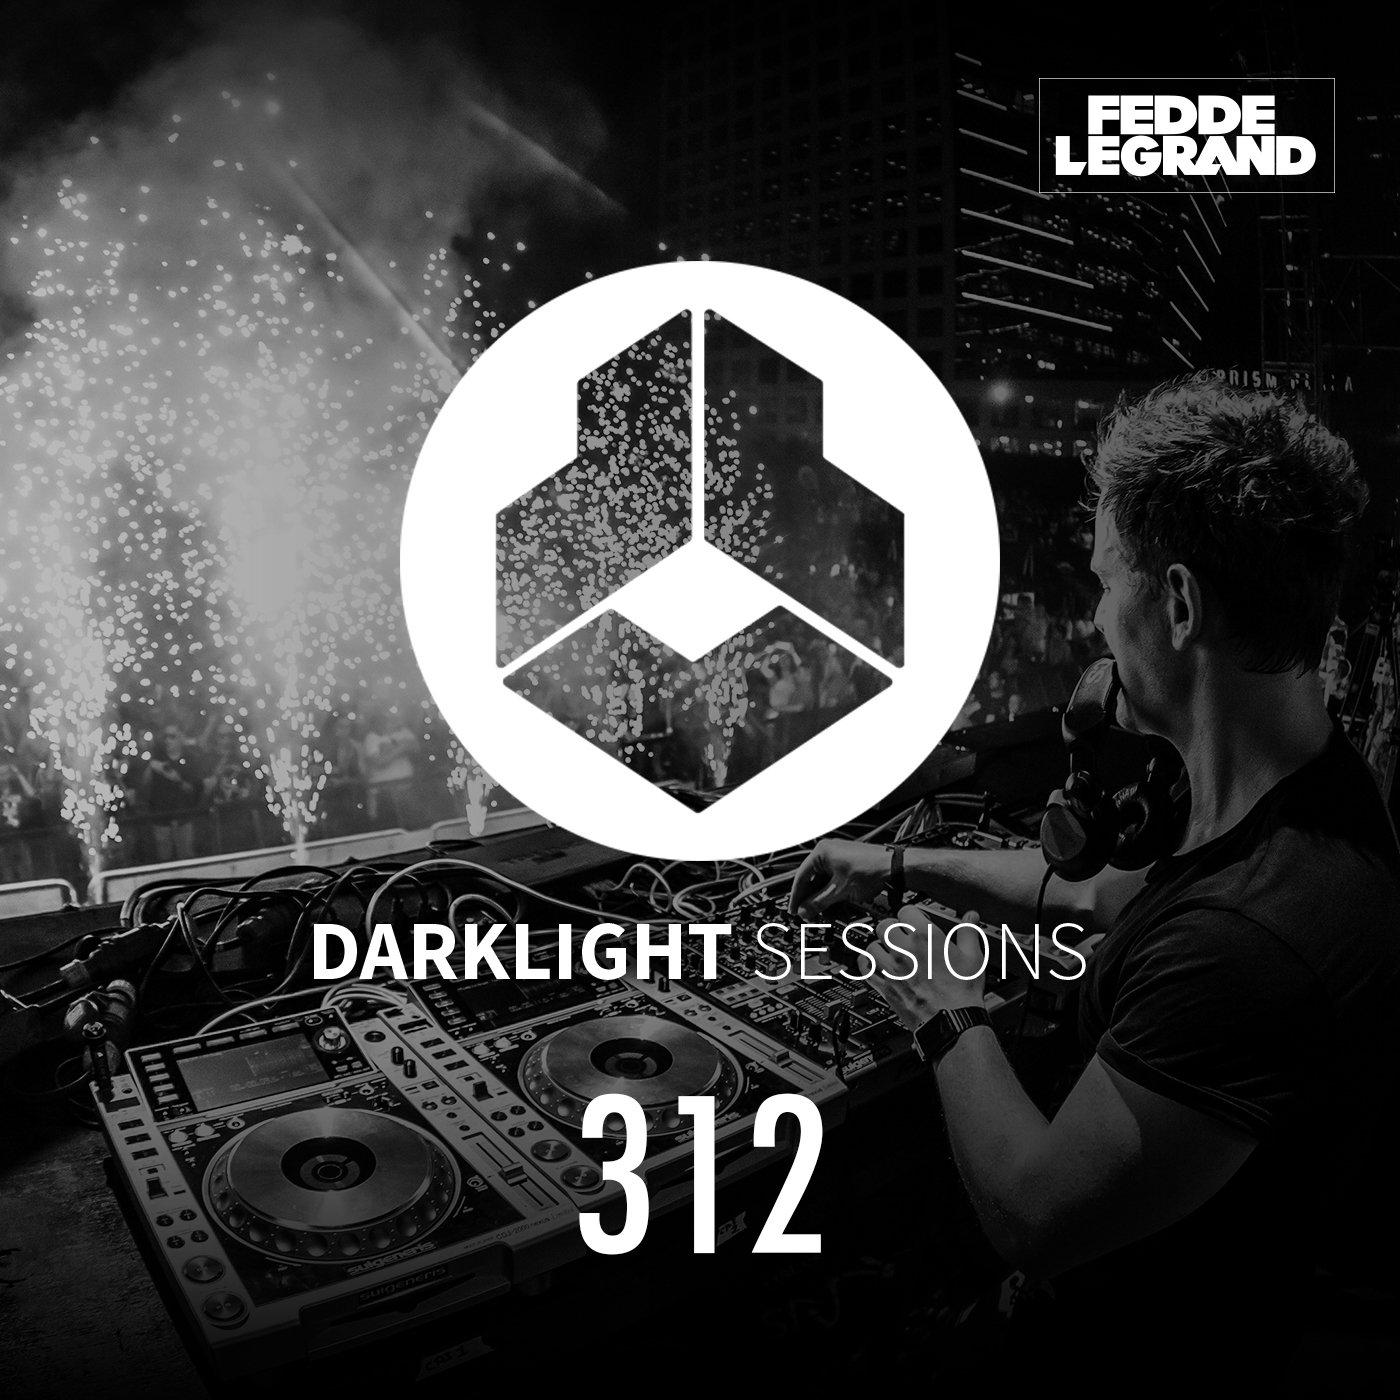 Darklight Sessions 312